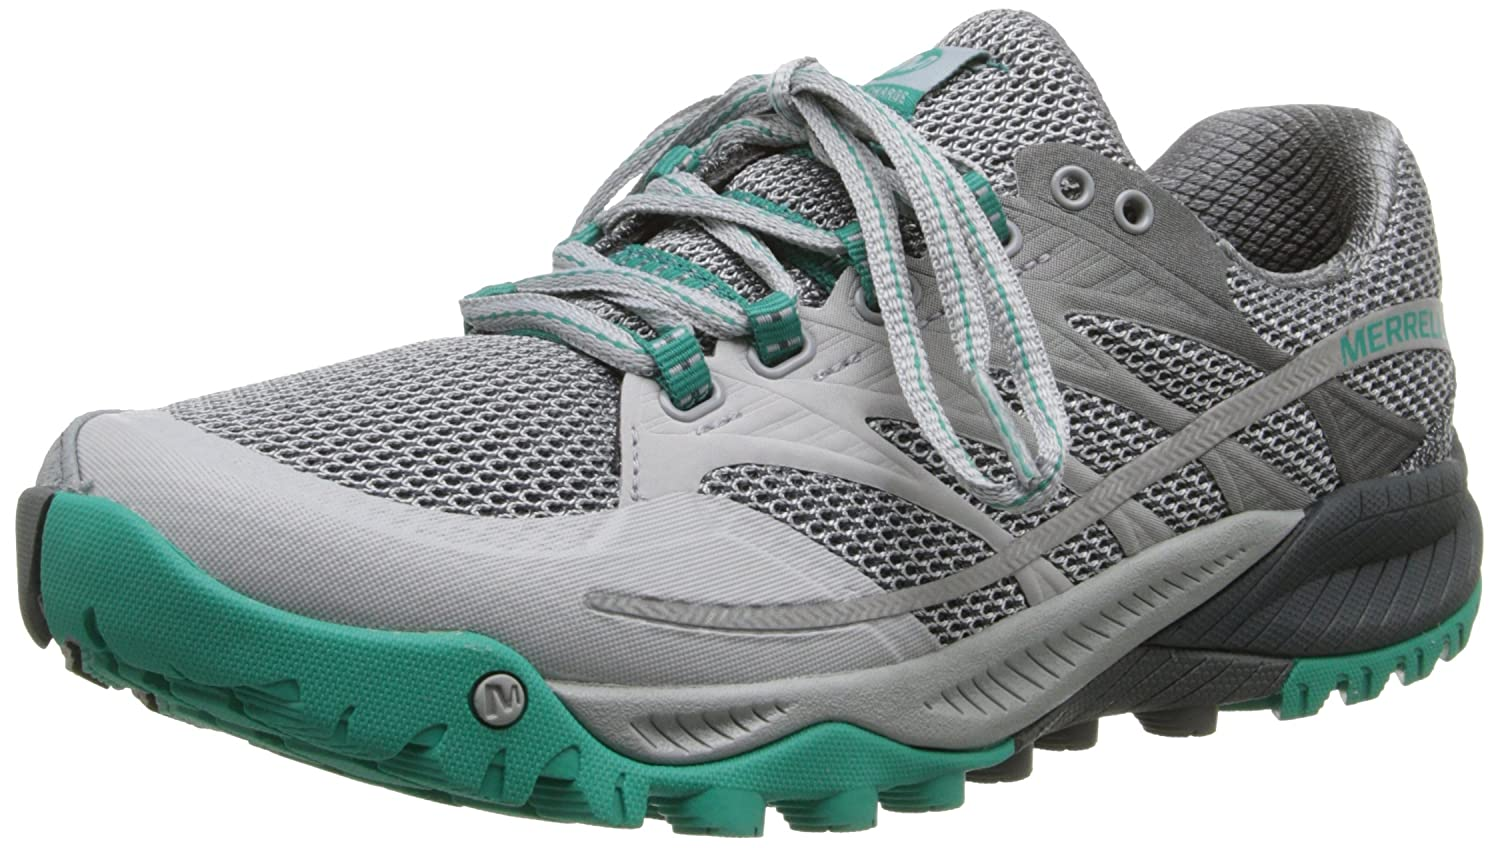 Merrell Women's All Out Charge Trail Running Shoe B00KZJ09DO 10 B(M) US|Light Grey/Dynasty Green